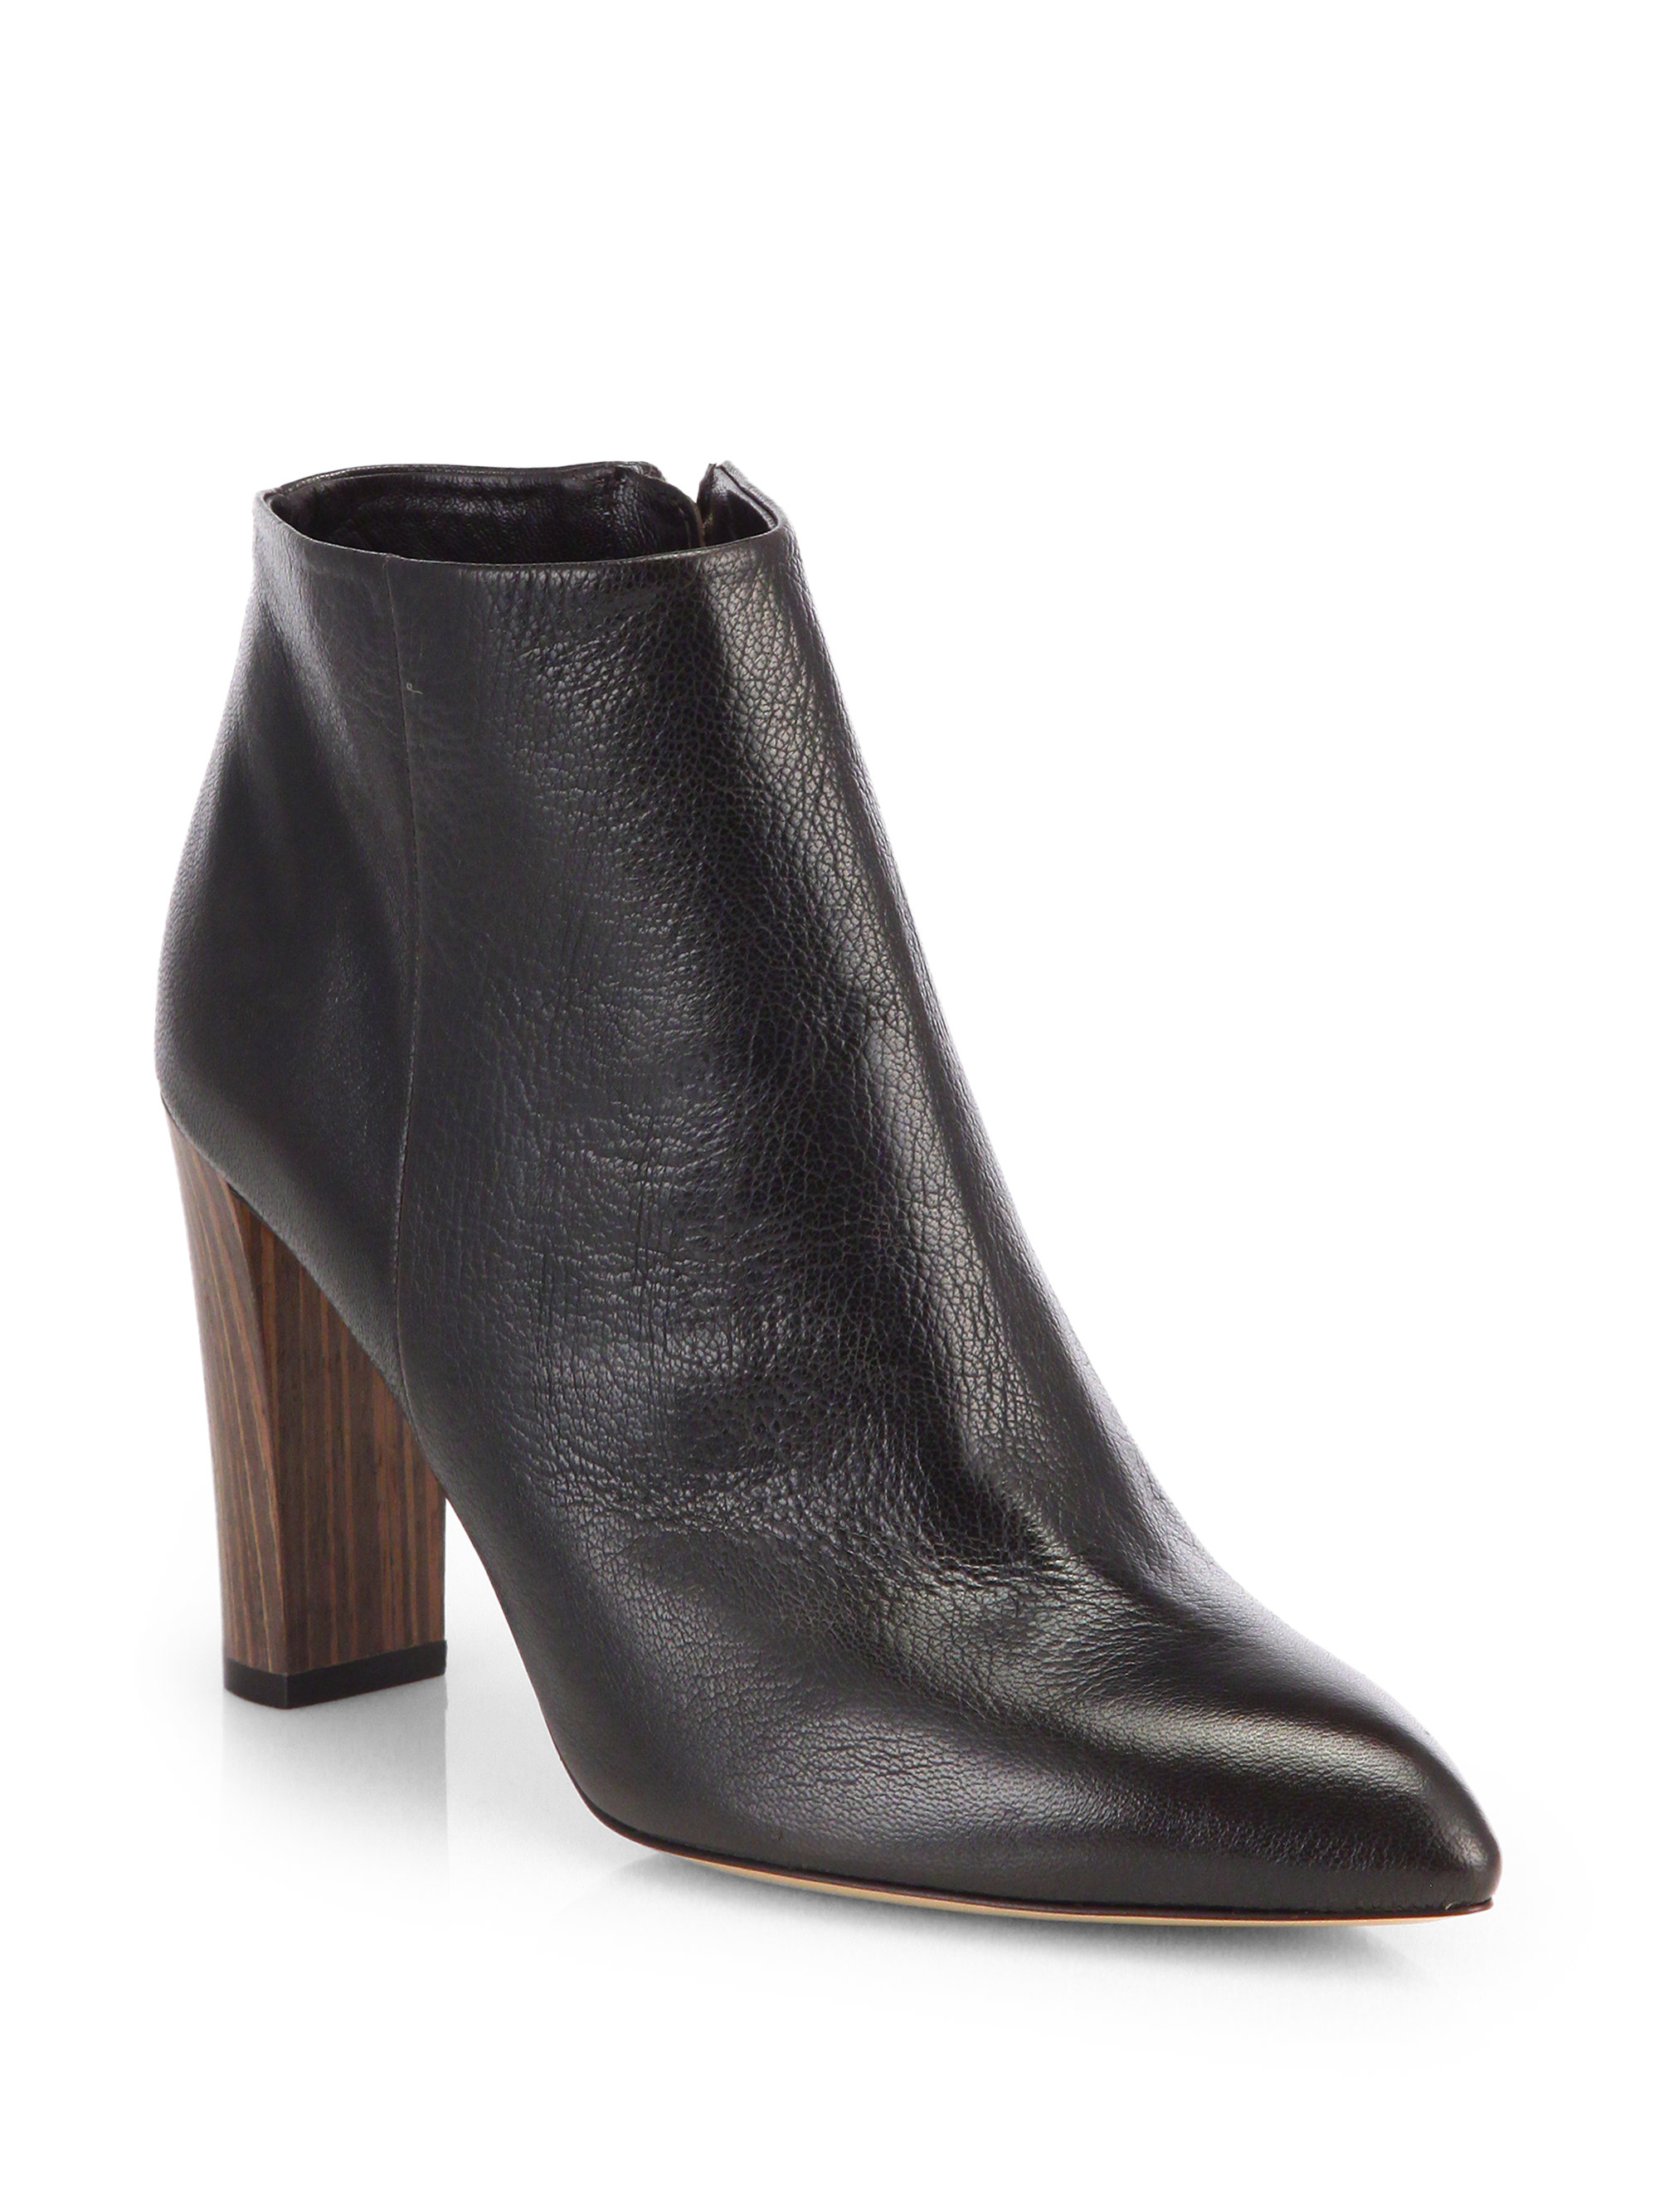 Kate Spade Nita Leather Ankle Boots In Brown Lyst